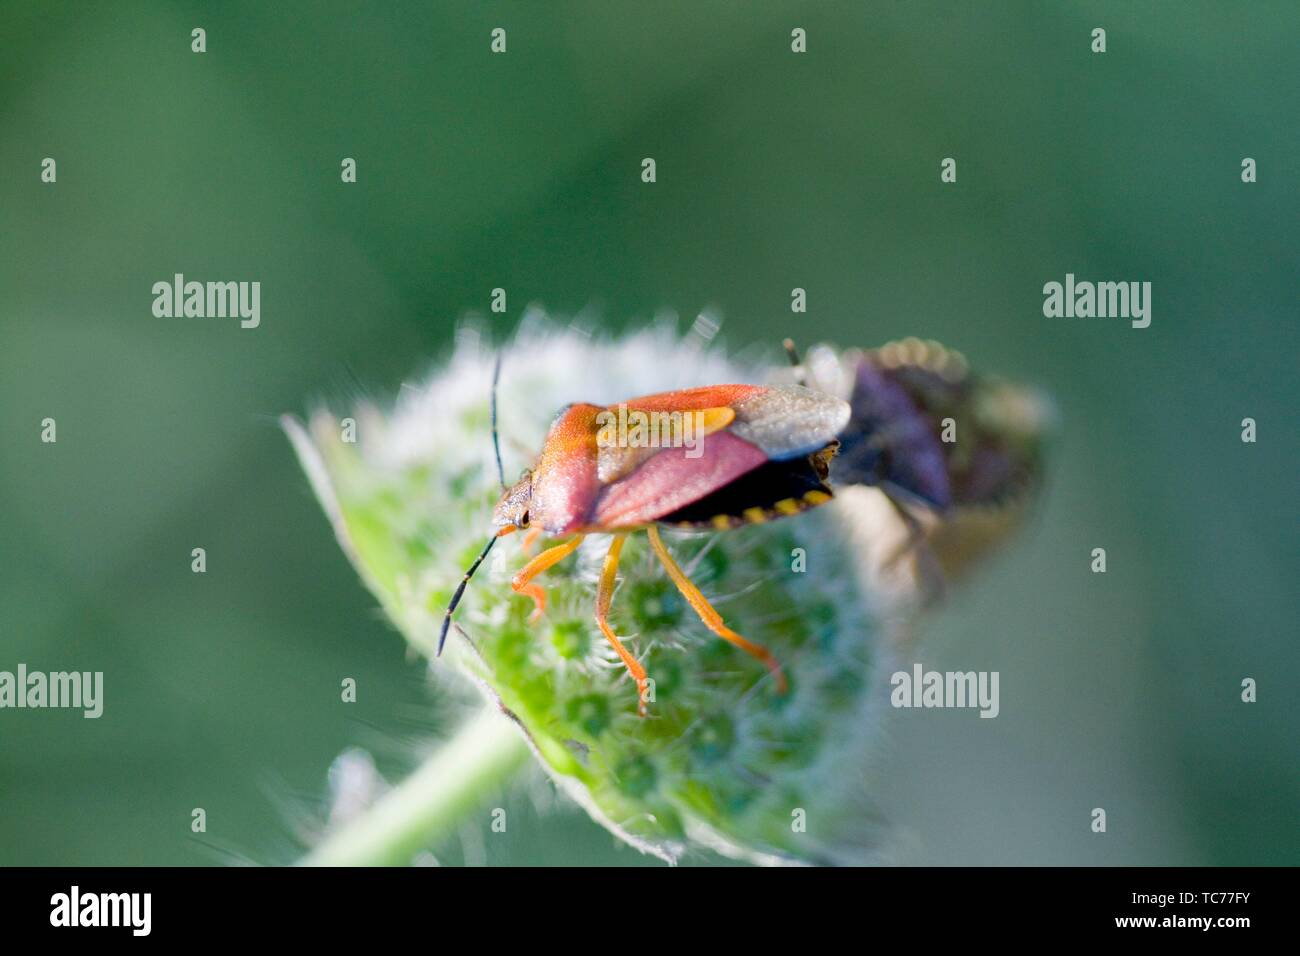 Rice Pest High Resolution Stock Photography And Images Alamy